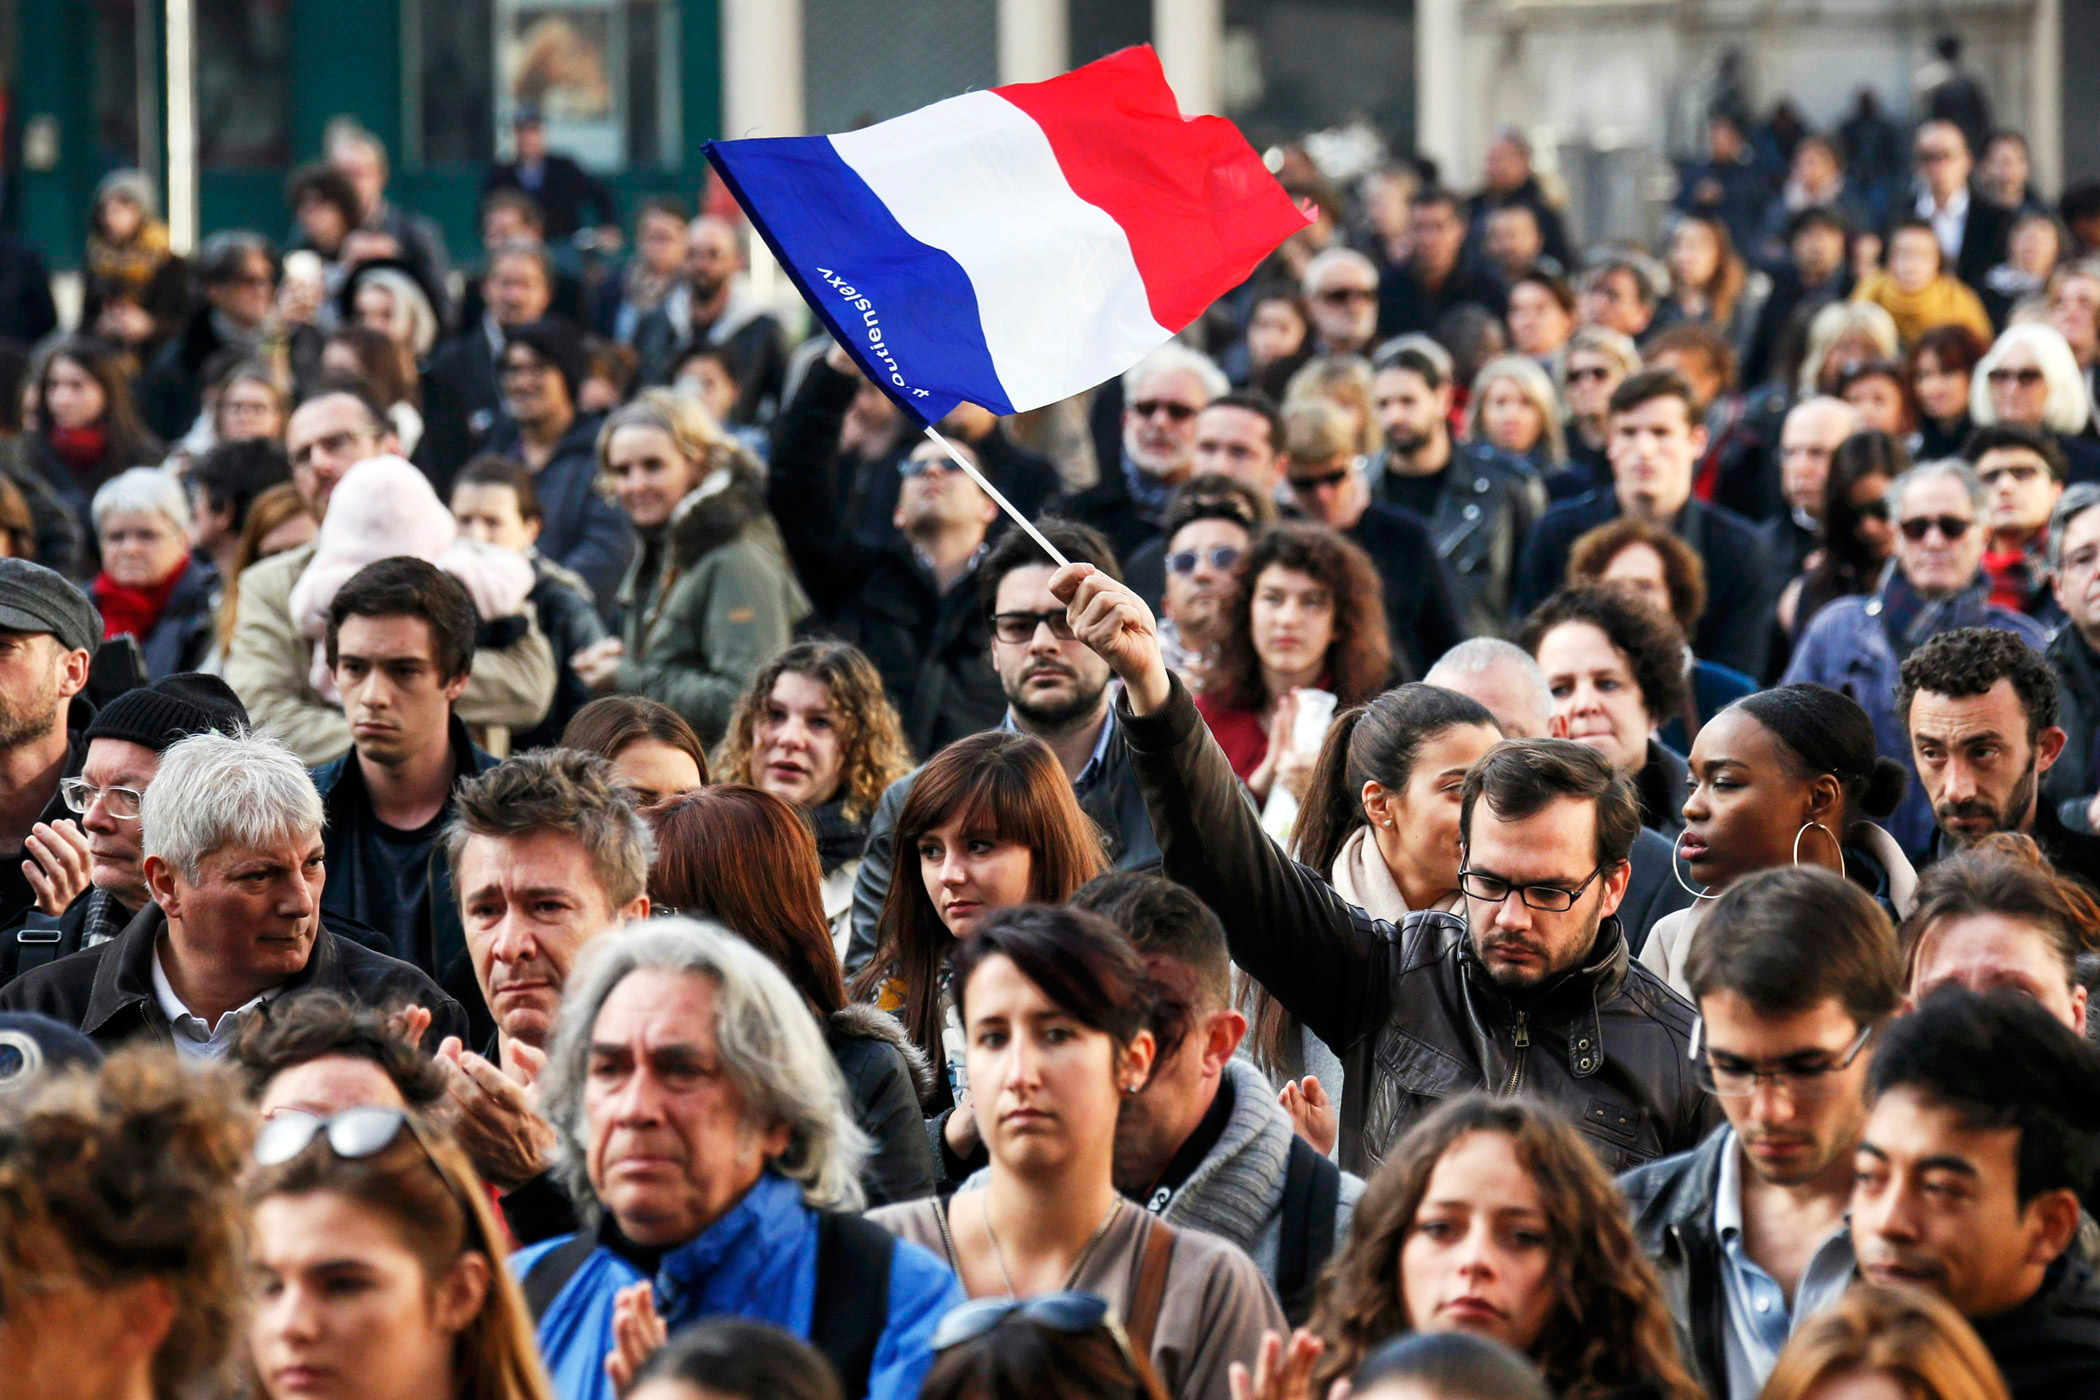 A man waves a French flag during a minute of silence in Lyon, France.